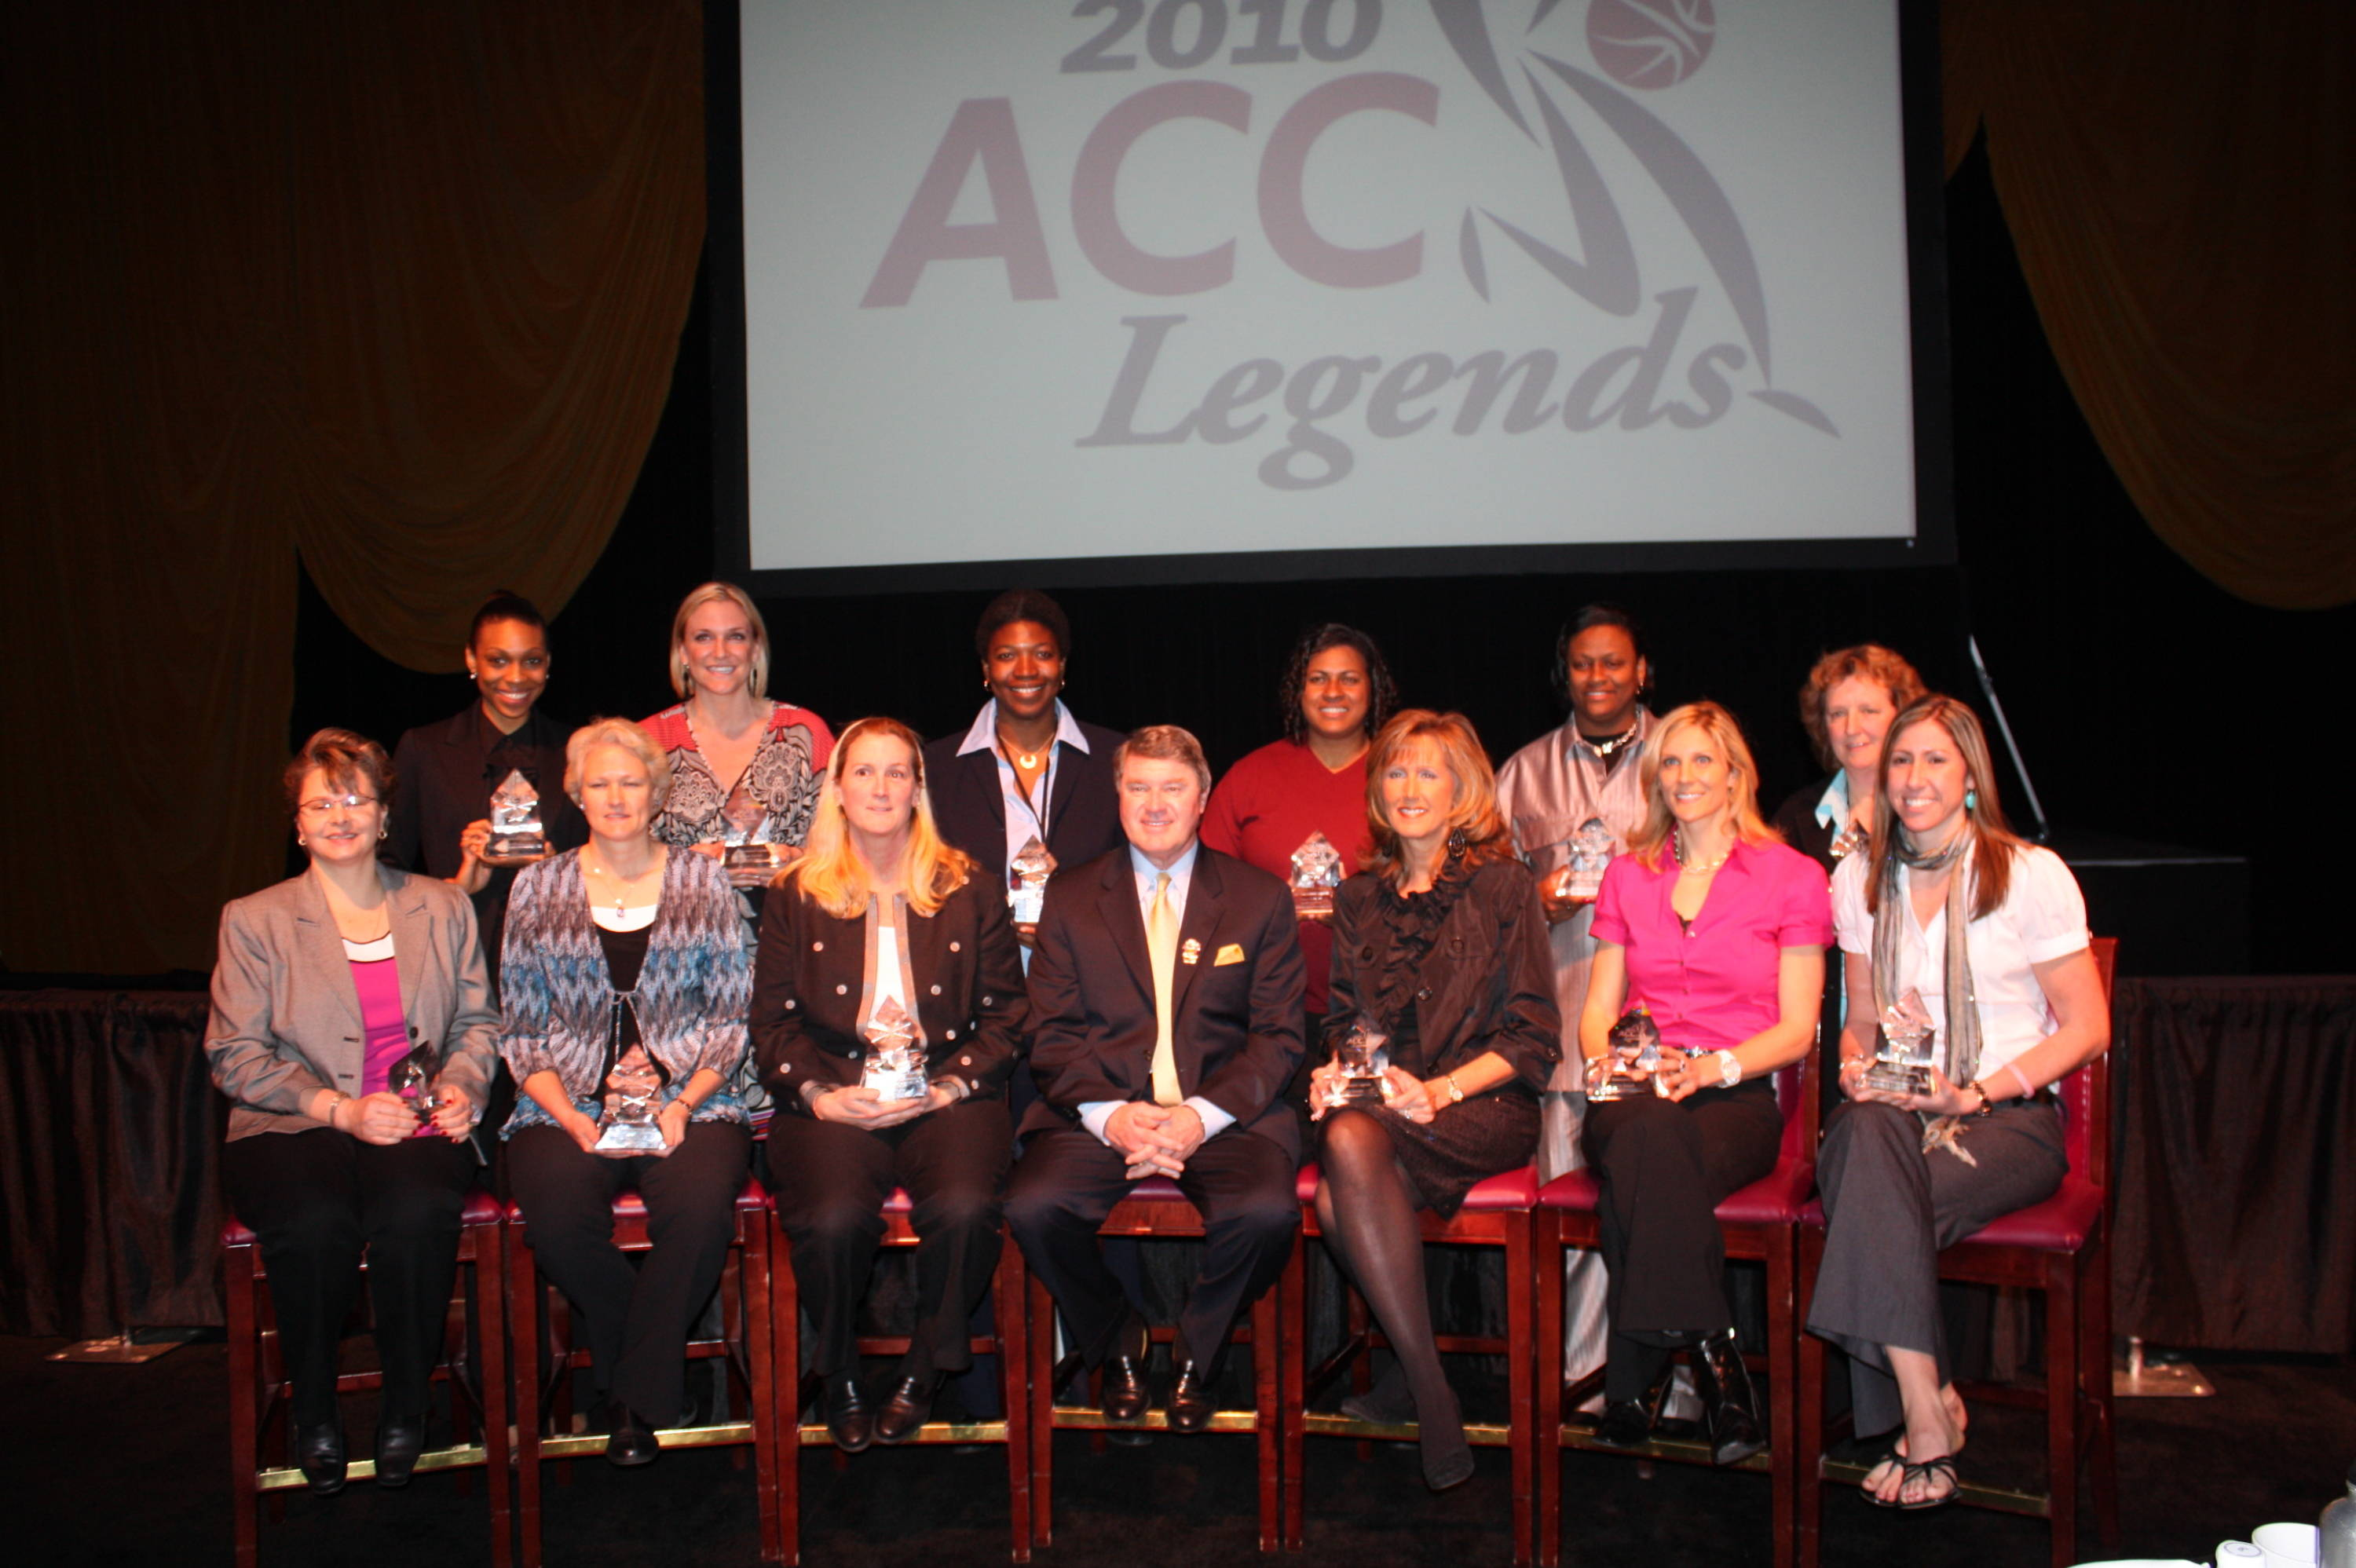 The 2010 ACC Legends